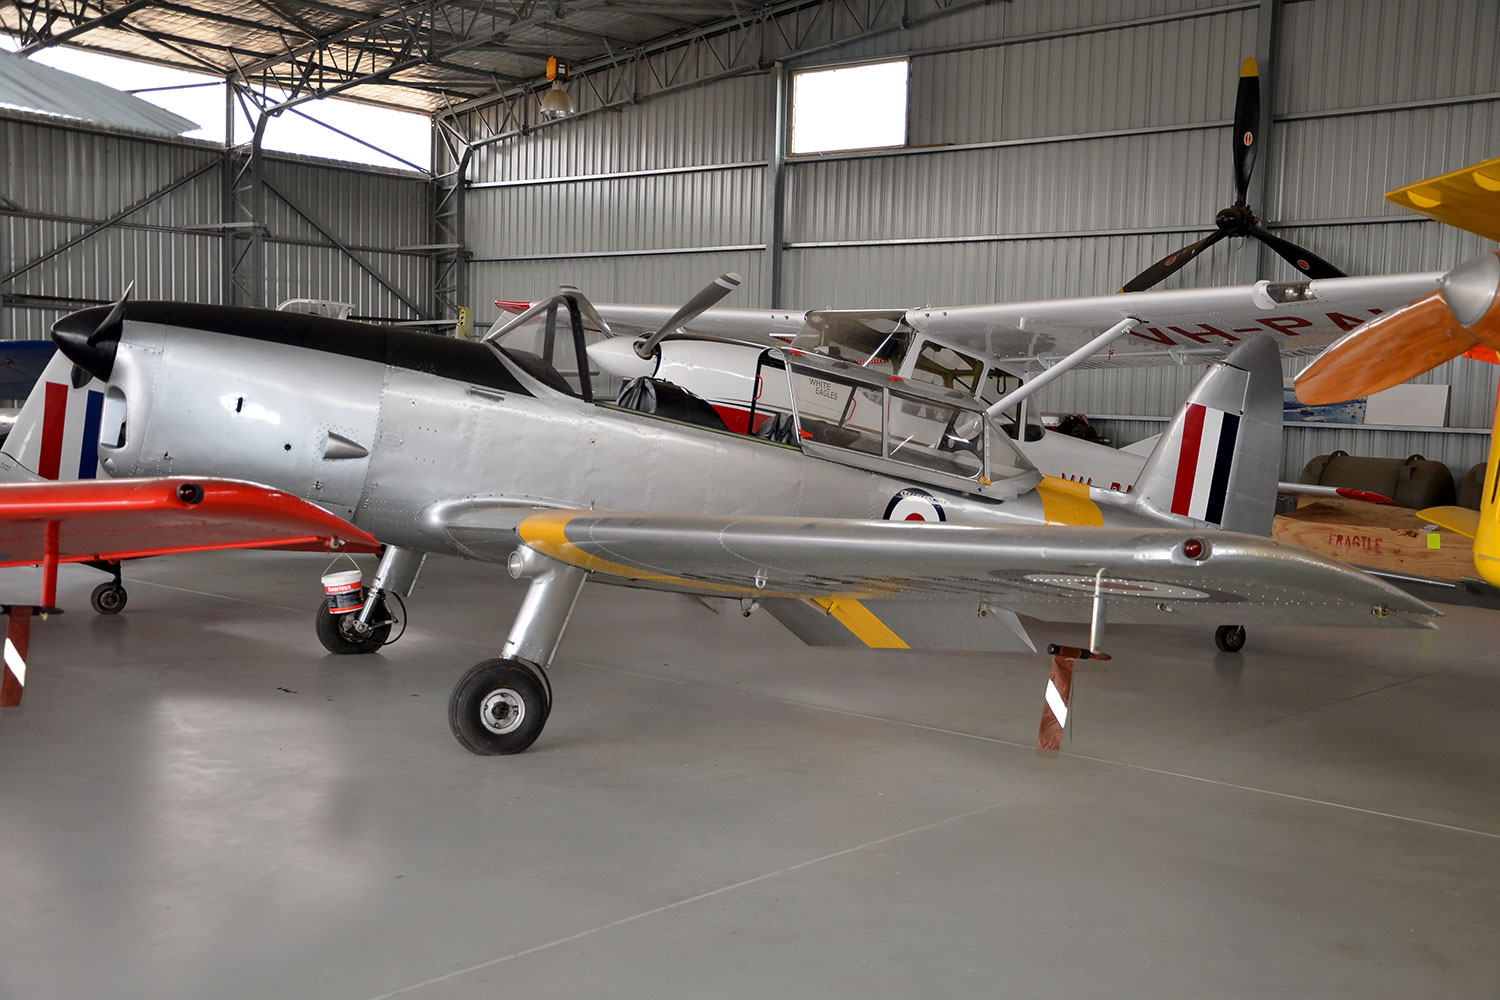 DHC1 Chipmunk VH-AMV in the hangar at Pays Air Services, Scone NSW